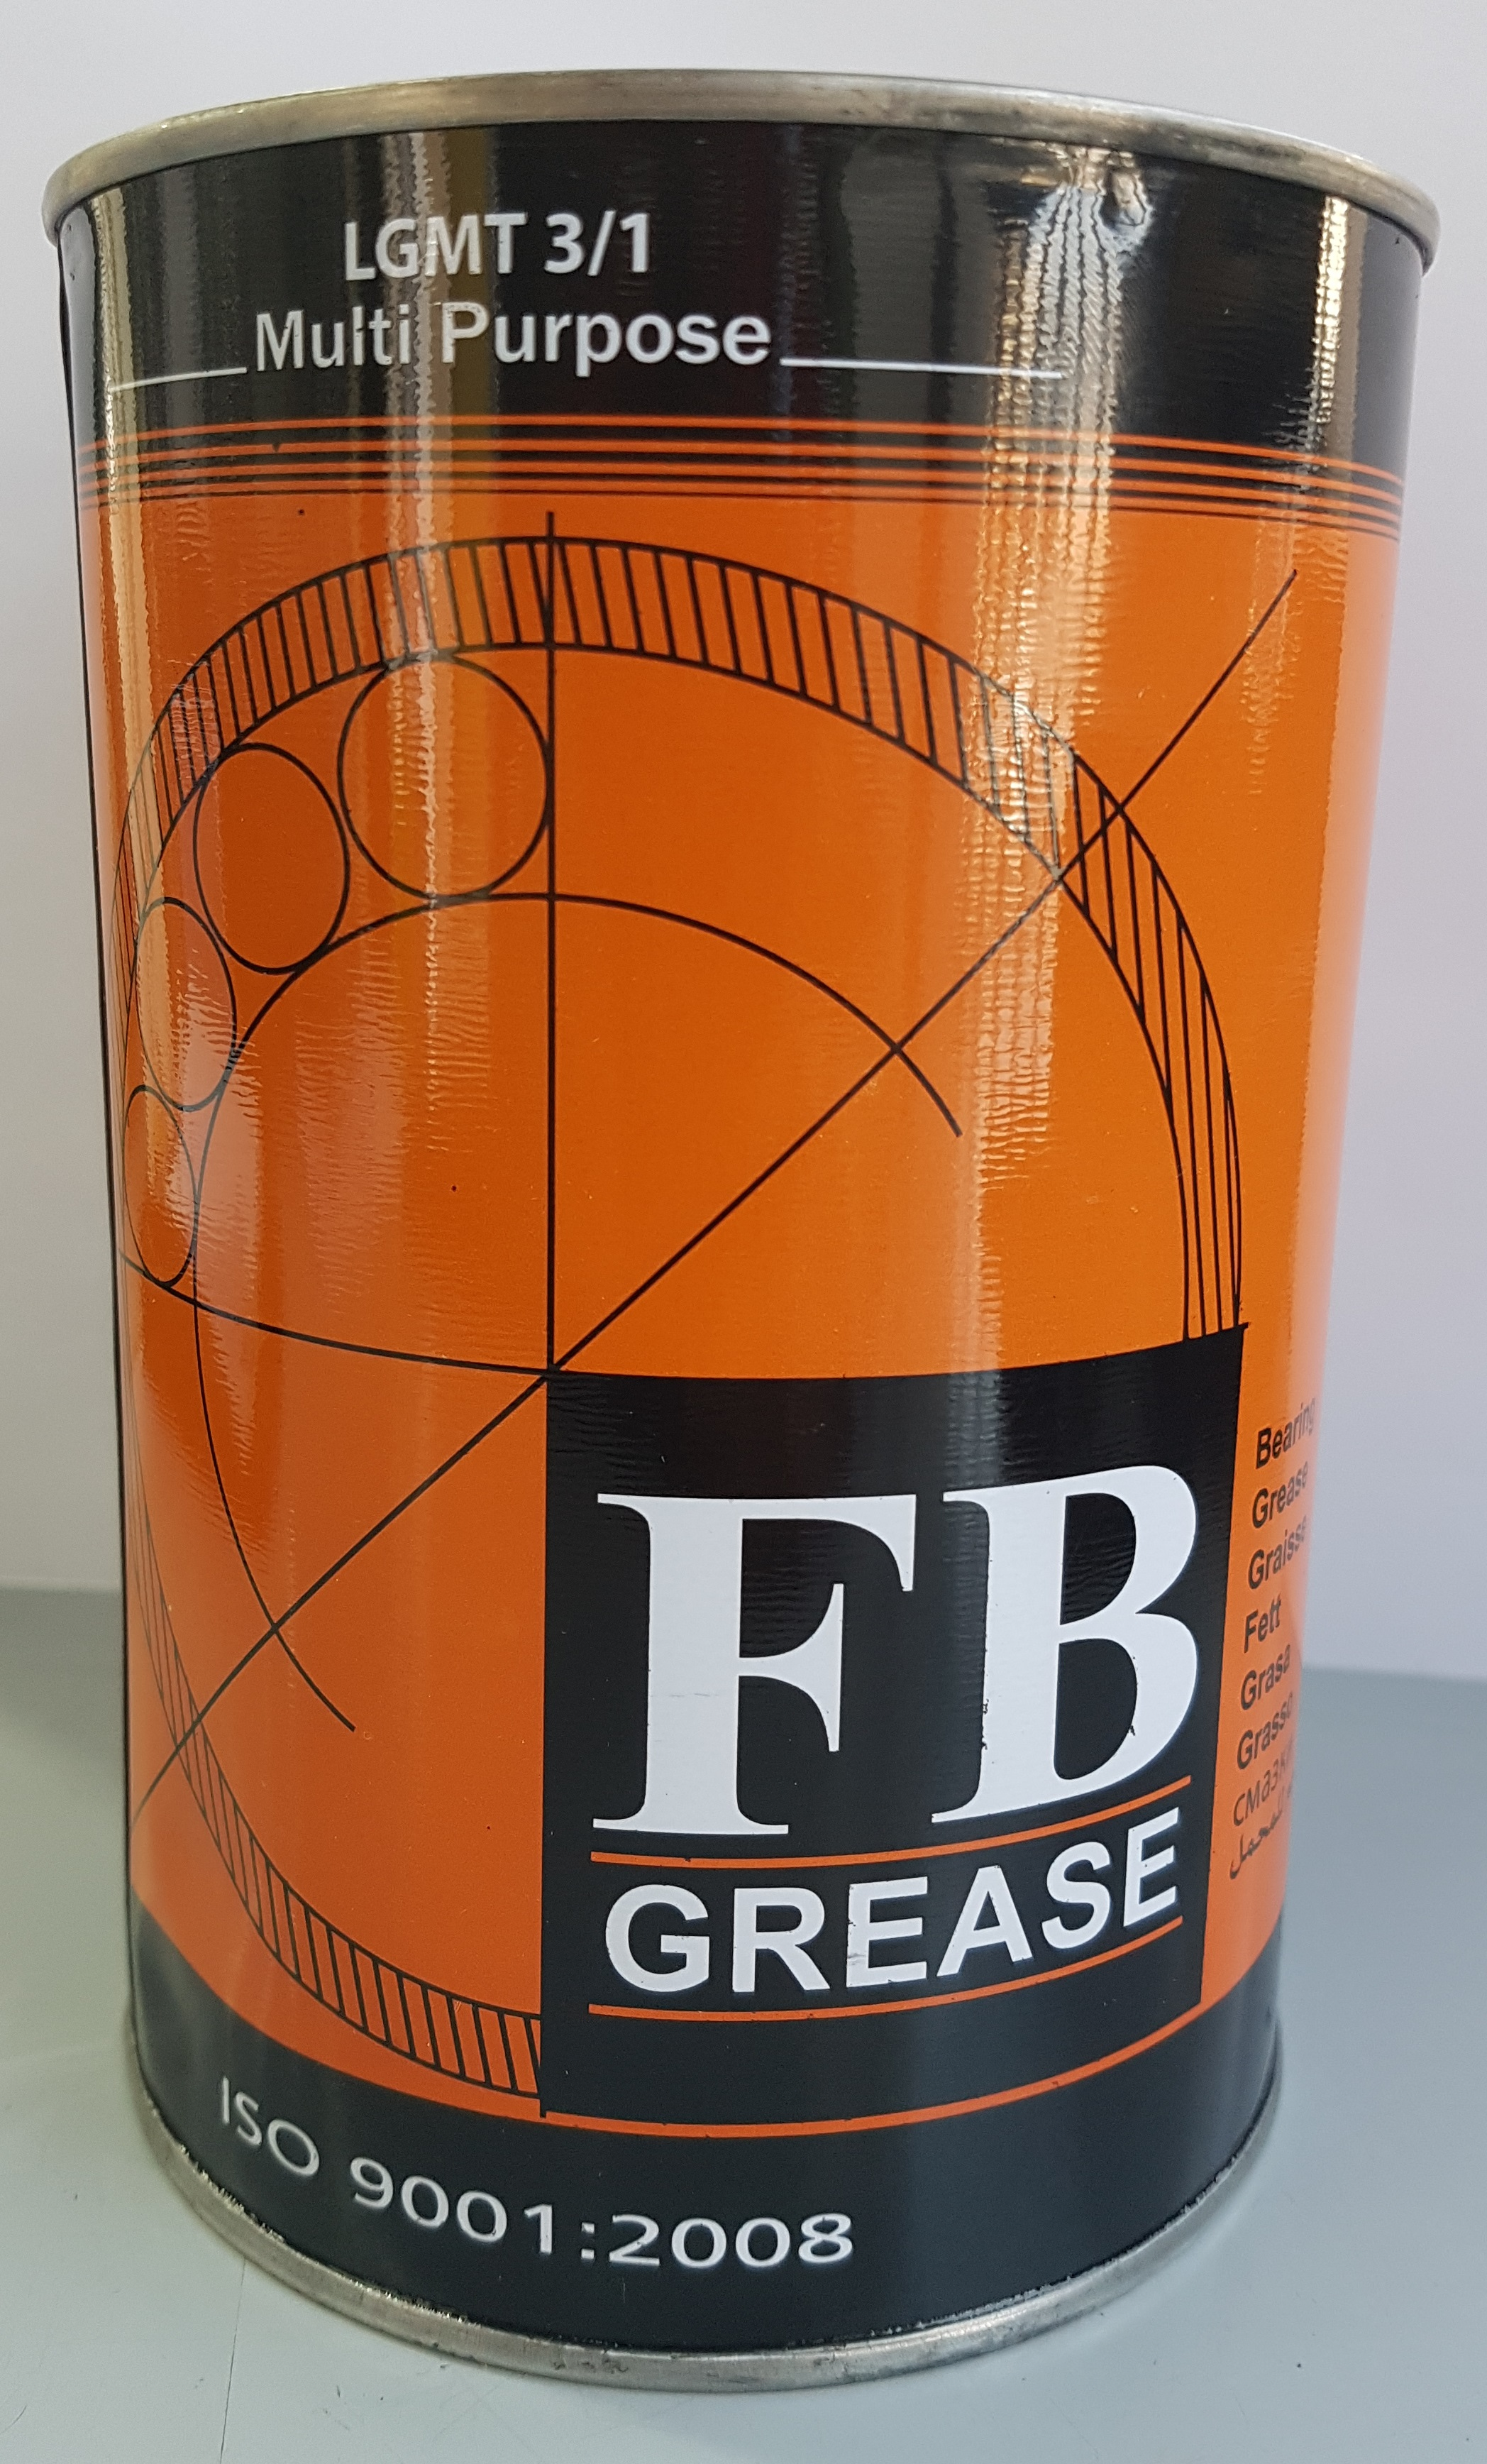 FB Grease